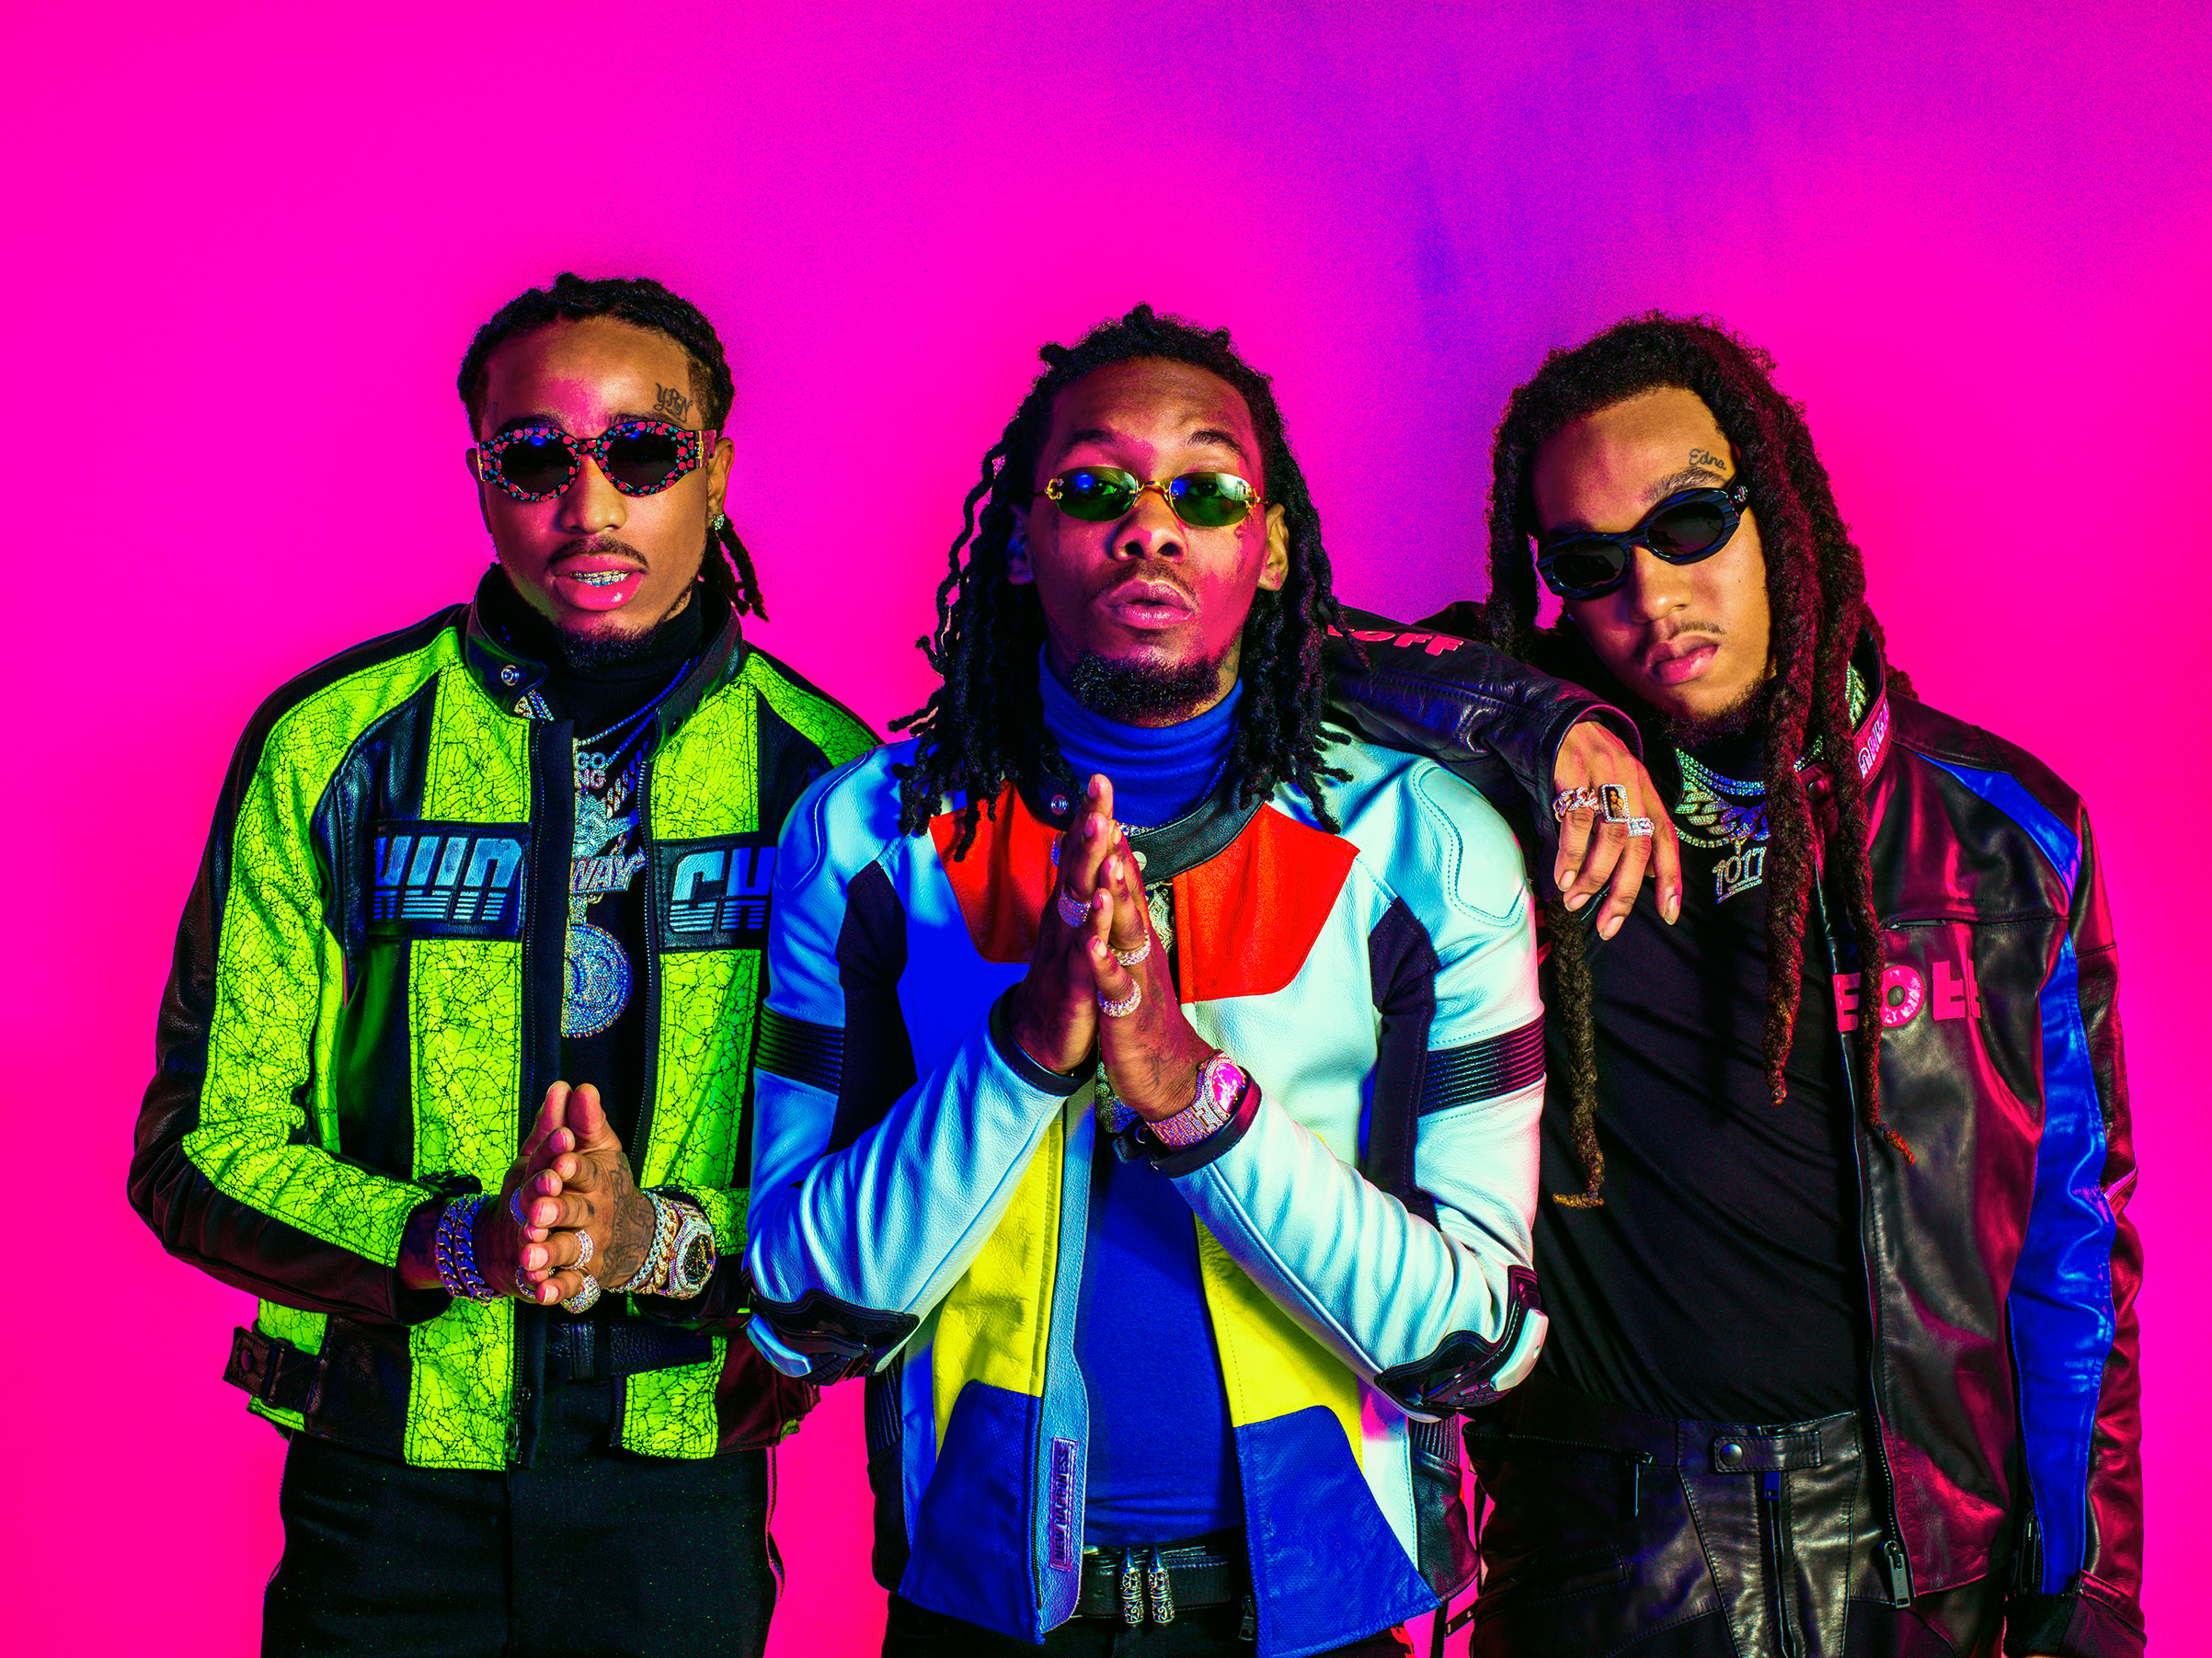 Quavo, Offset and Takeoff, of Atlanta trio Migos, are at the forefront of rap's latest wave